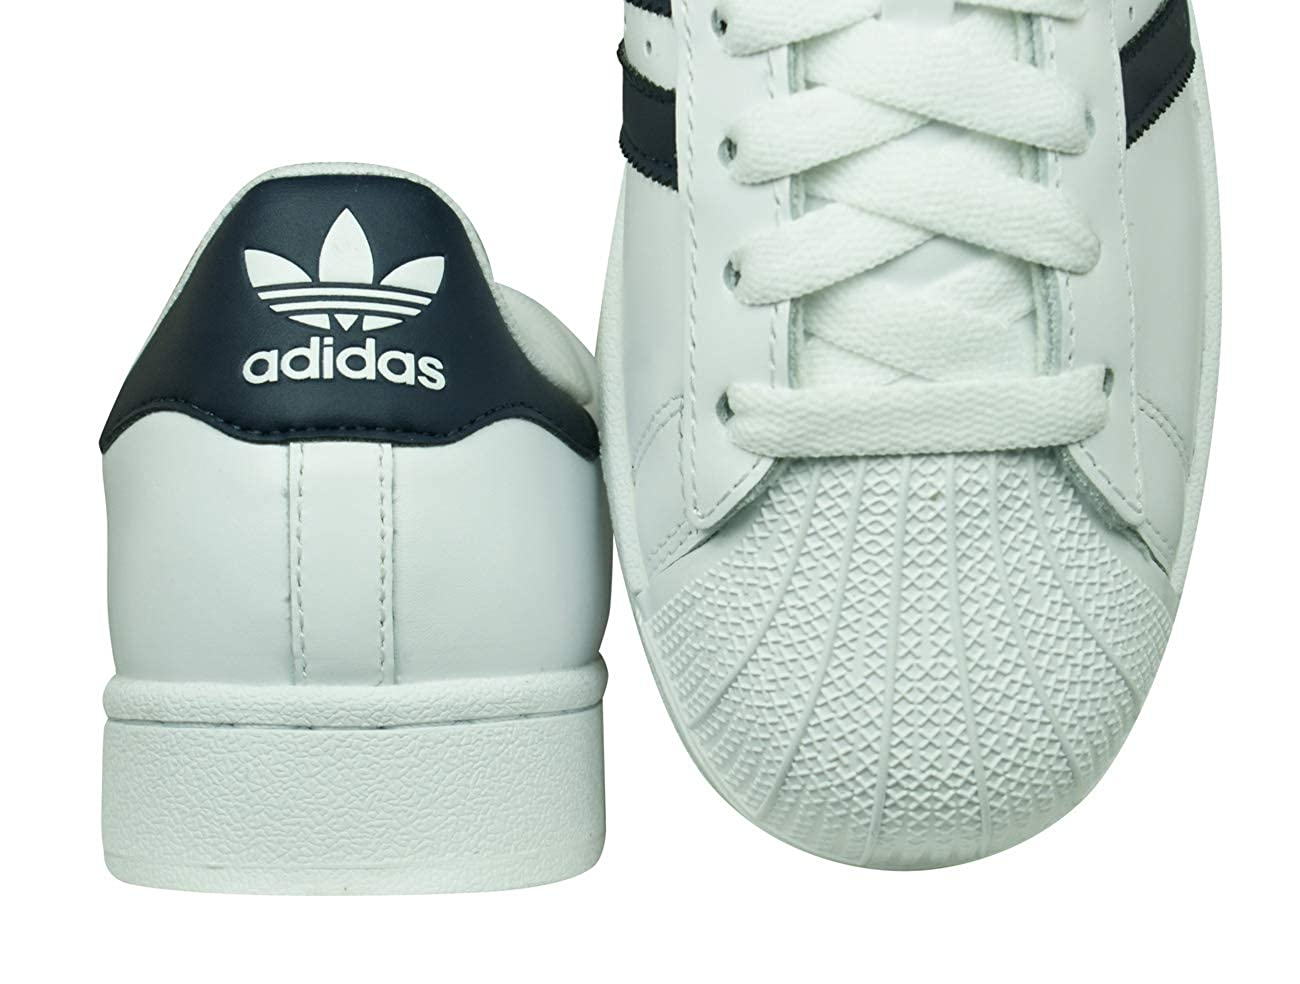 Adidas Originals Superstar II Trainers WhiteNavy Casual Lace Up G17070 New | eBay